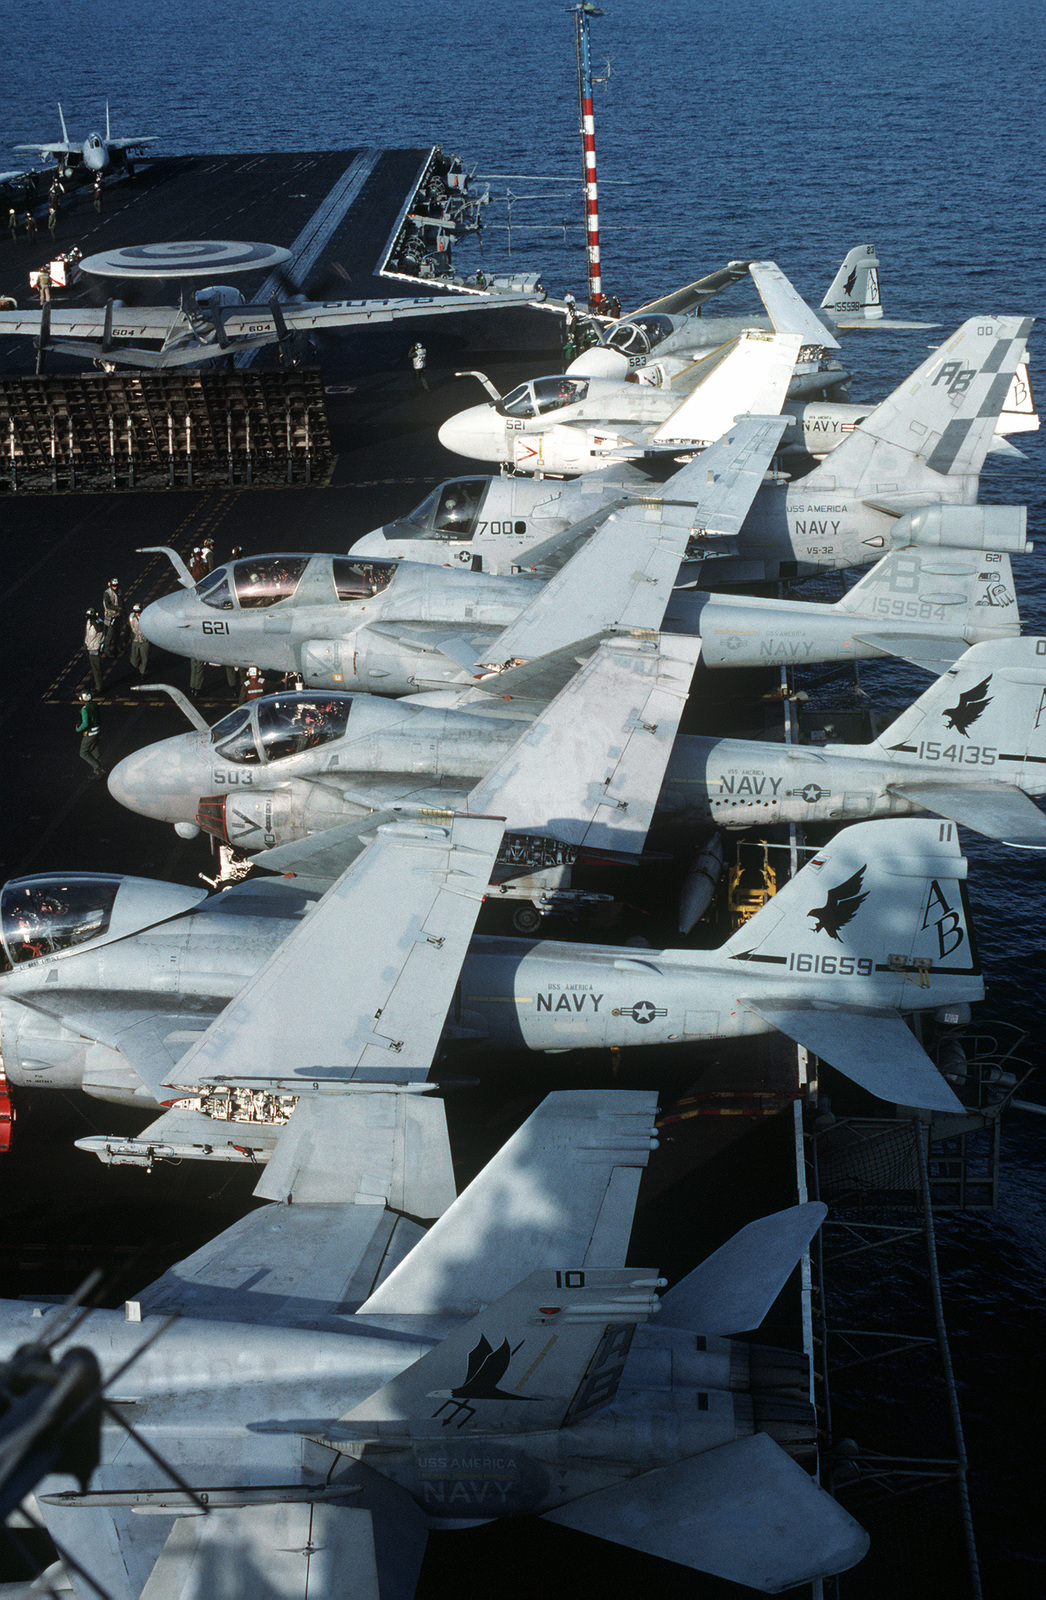 Various aircraft line the flight deck of the aircraft carrier USS AMERICA (CV 66). They include, from foreground: an F/A-18C Hornet aircraft, two Attack Squadron 72 (VA-72), A-6E Intruder aircraft, a Tactical Electronic Warfare Squadron 137 (VAQ-137) EA-6B Prowler aircraft, an Air Anti-submarine Squadron 32 (VS-32) S-3A Viking aircraft and two more VA-72 A-6E Intruder aircraft